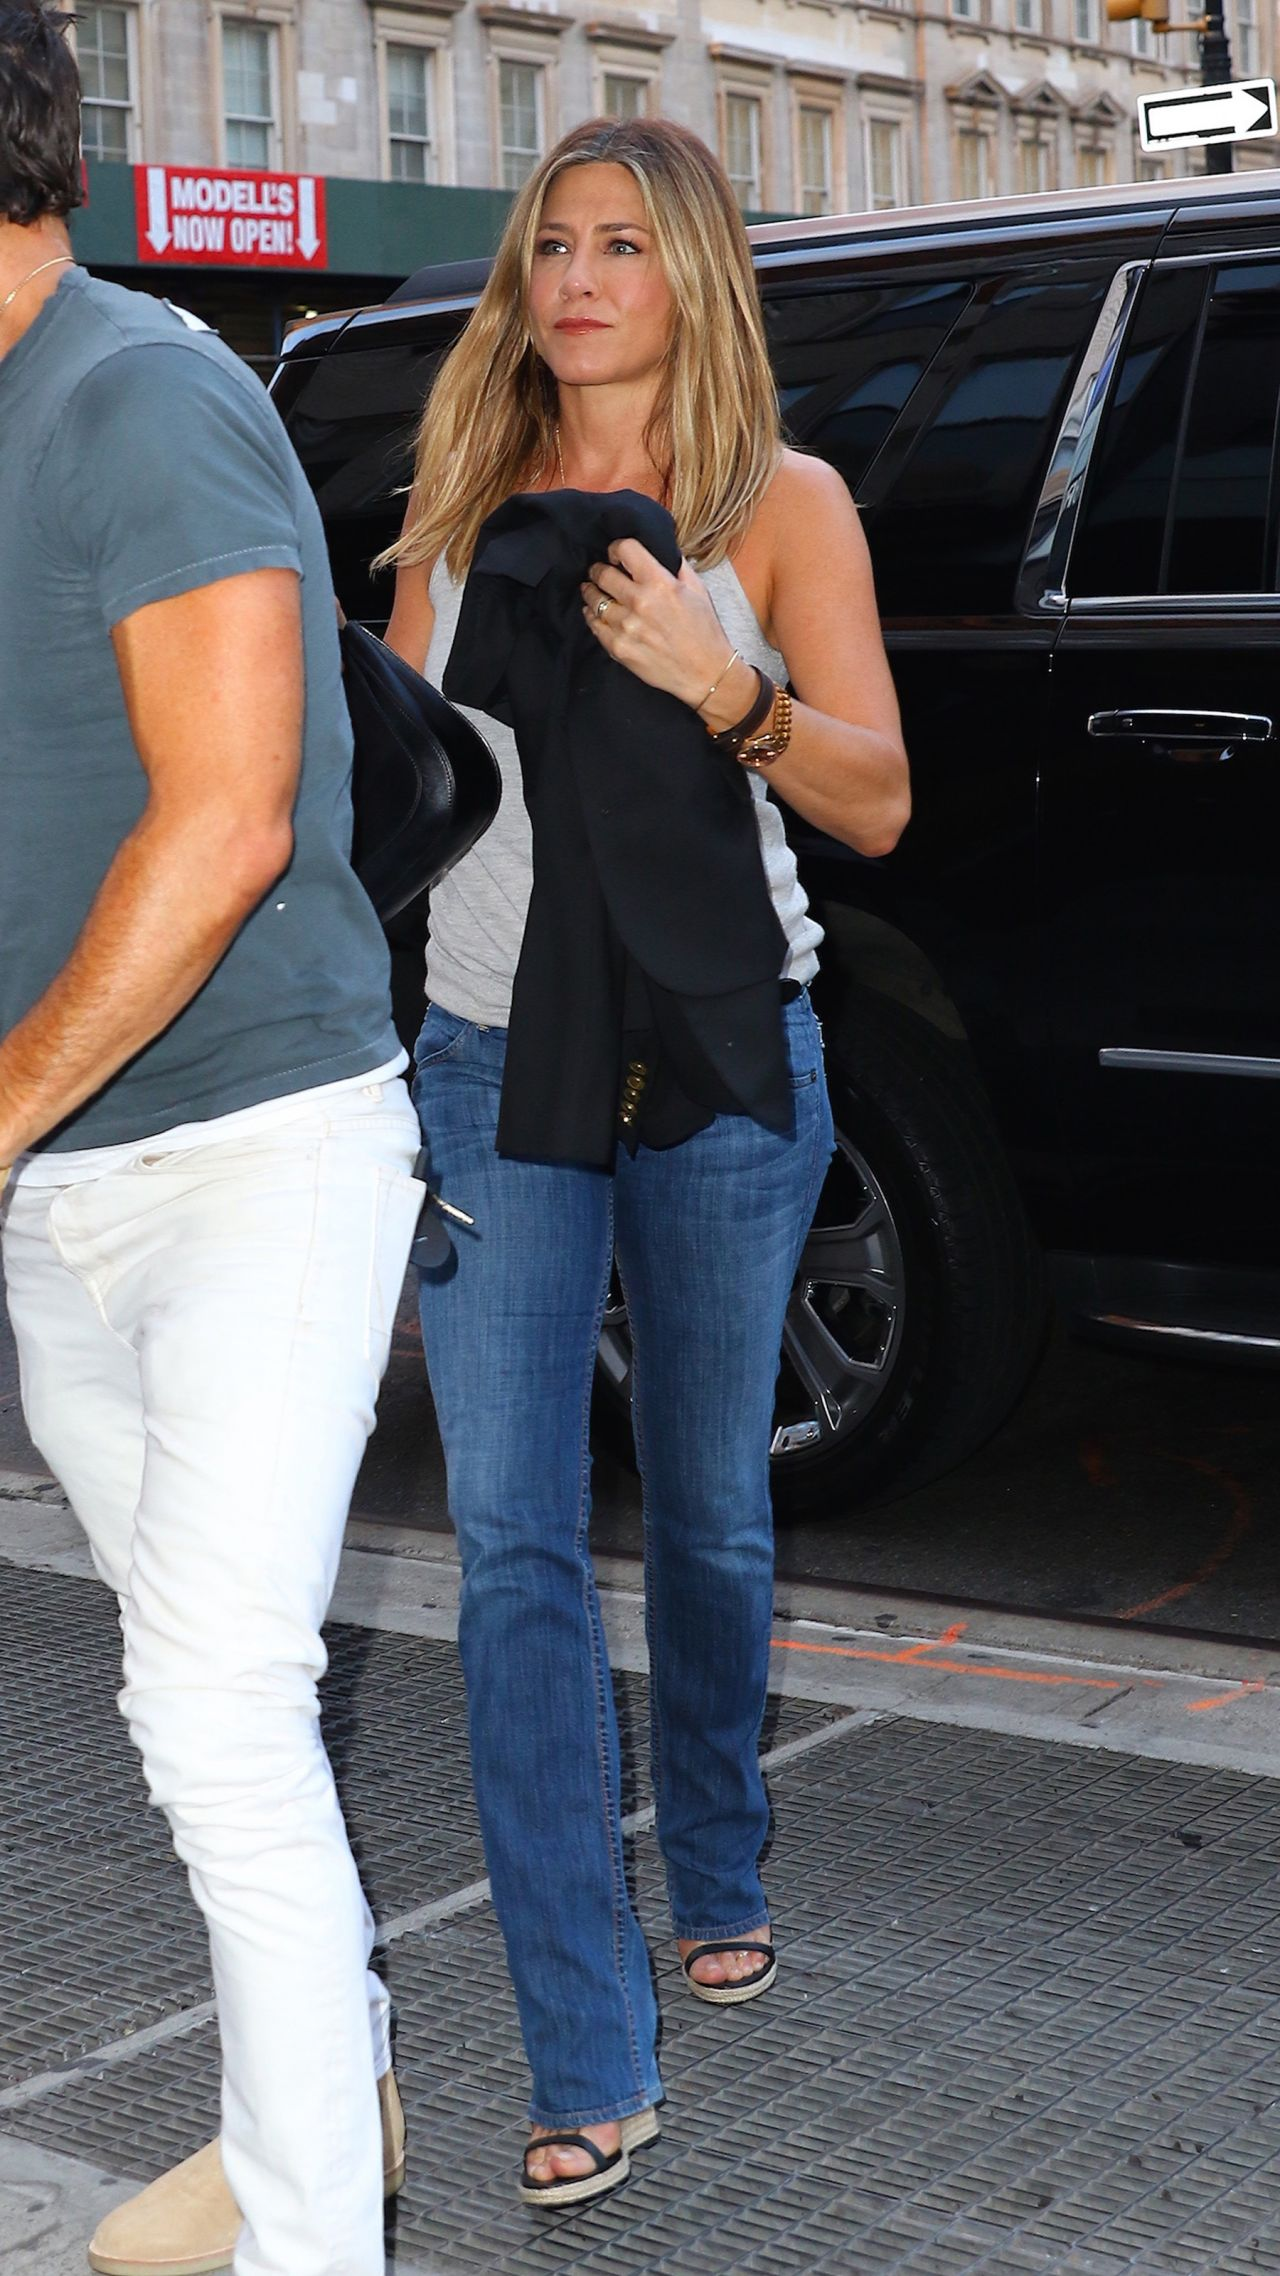 Jennifer Aniston Casual Style Out In New York City 6 21 2016